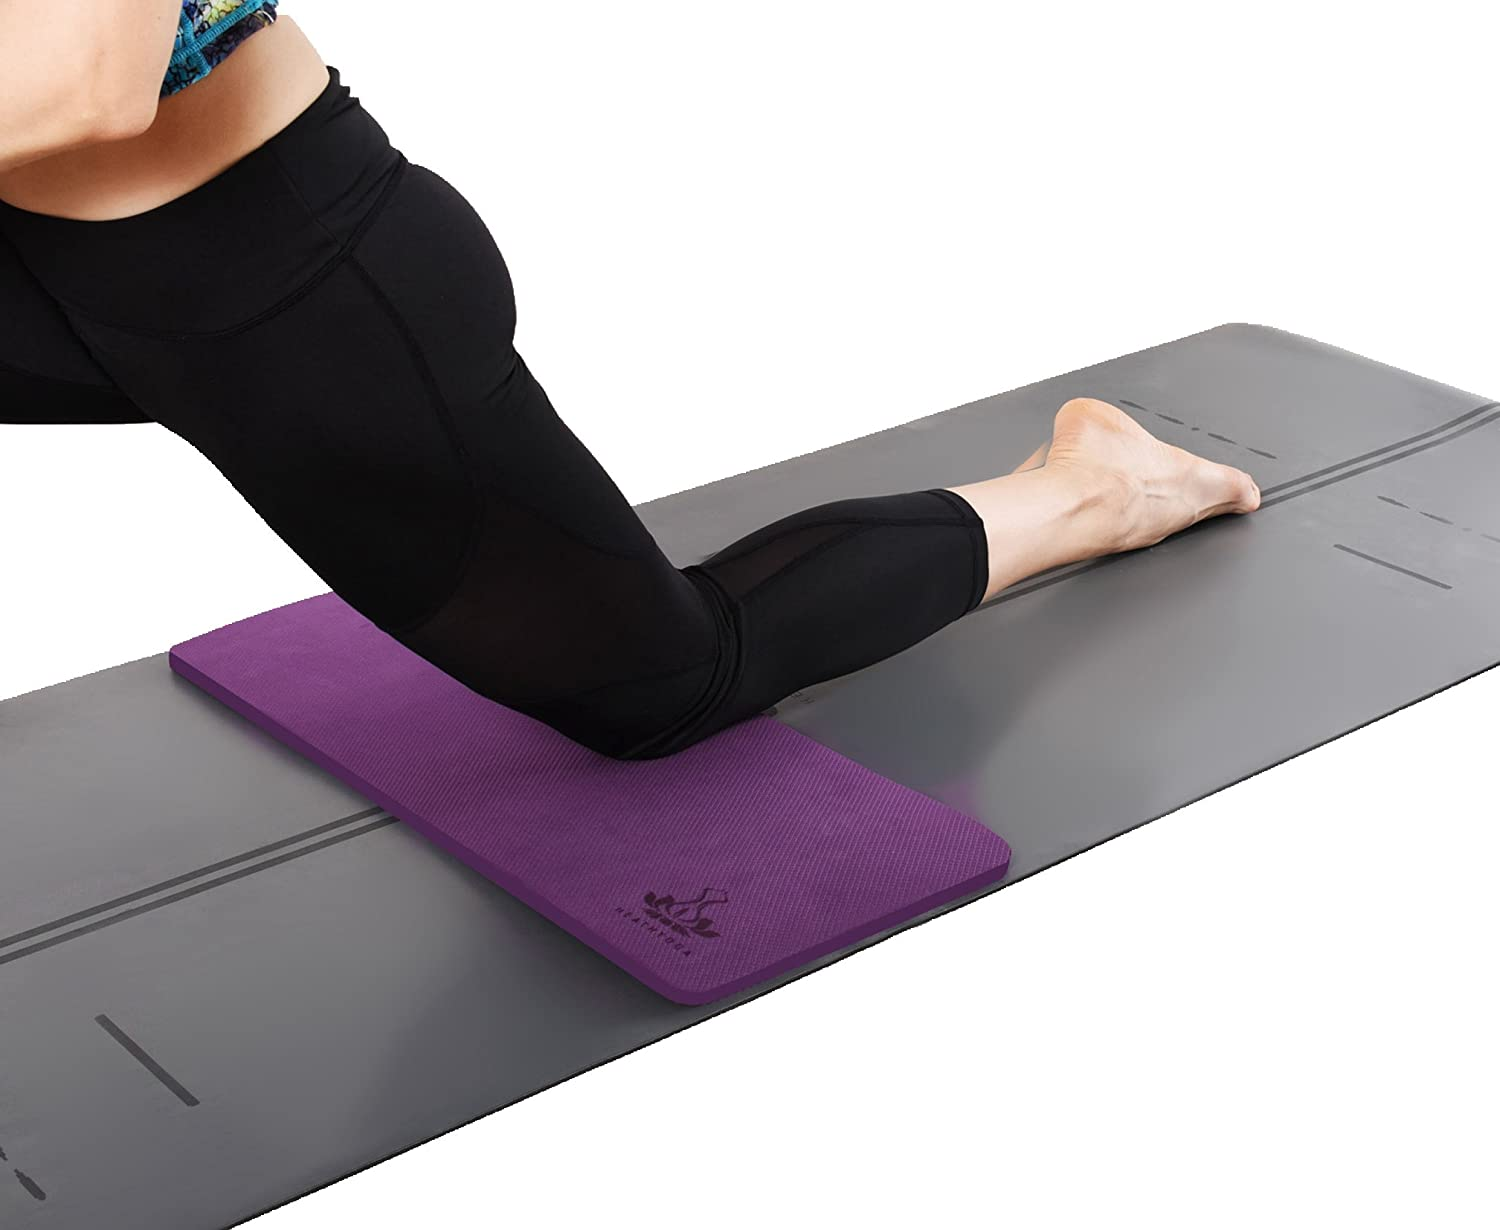 Heathyoga Yoga Knee Pad, Great for Knees and Elbows While Doing Yoga and Floor Exercises, Kneeling Pad for Gardening, Yard Work and Baby Bath. 26 x10 x